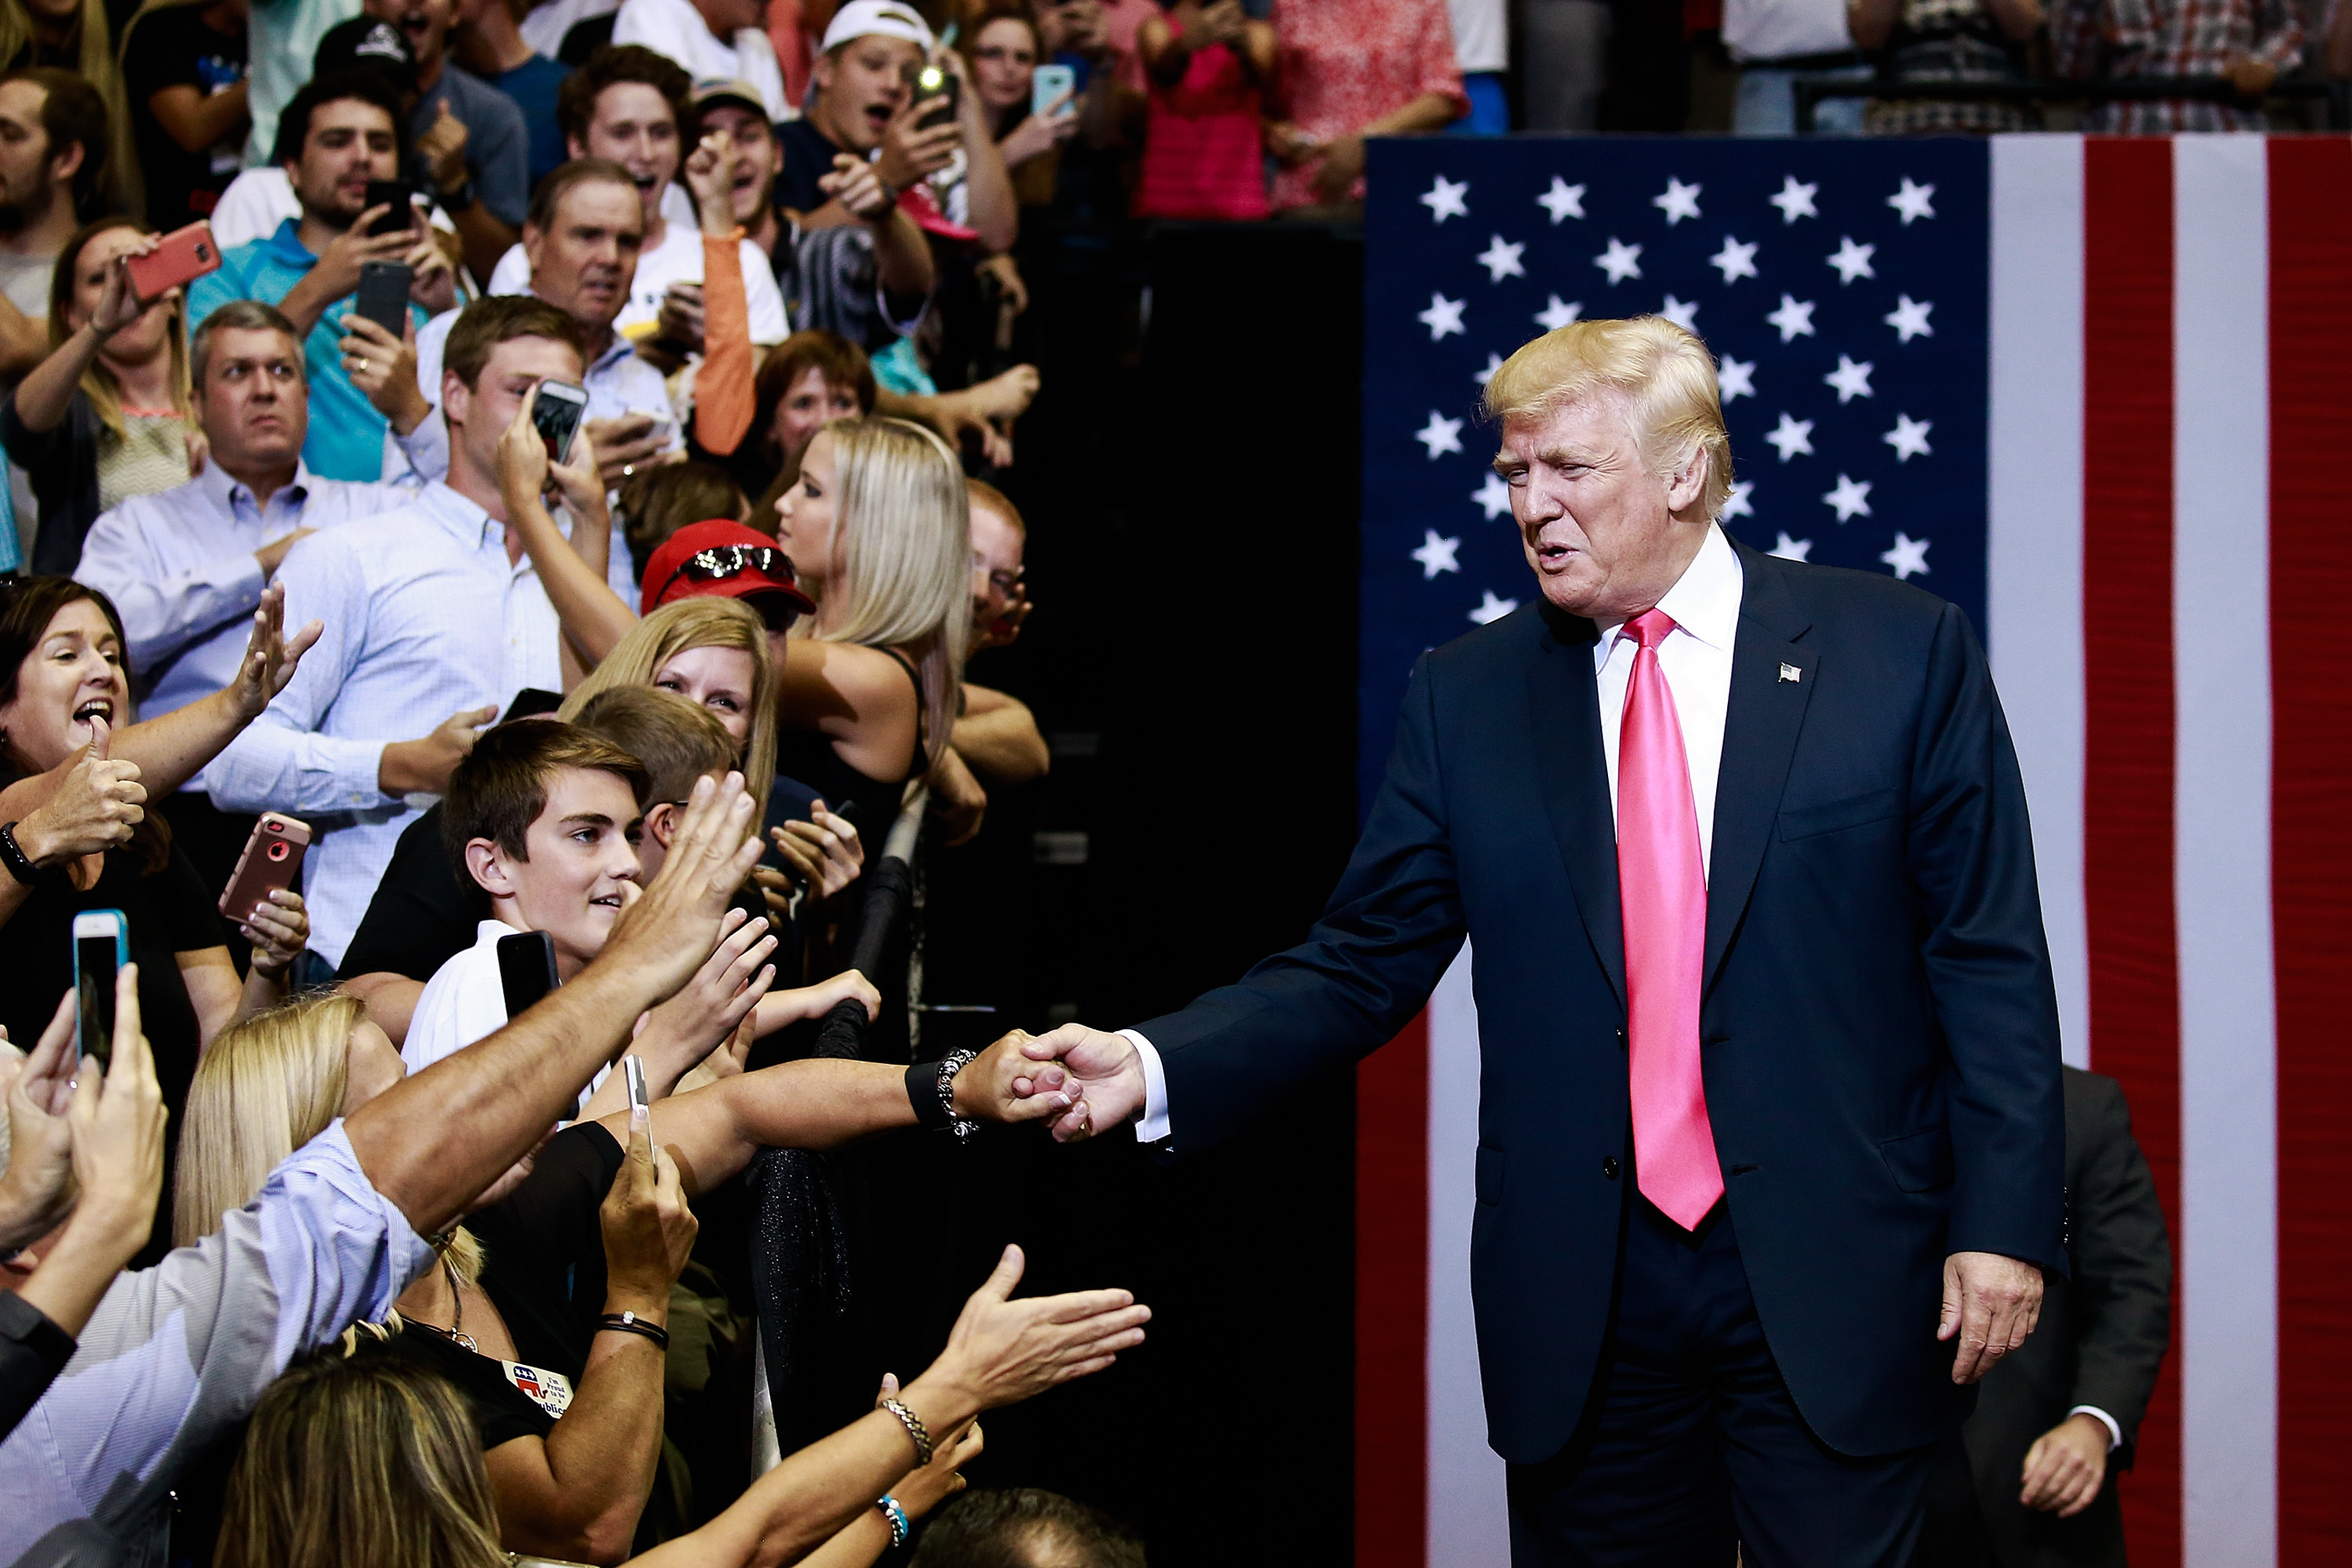 Donald Trump, the Republican presidential nominee, arrives to speak at a campaign rally in Jacksonville, Fla., last month. Trump has had to toss aside his aversion to germs and shake hands with members of the public on the campaign trail.